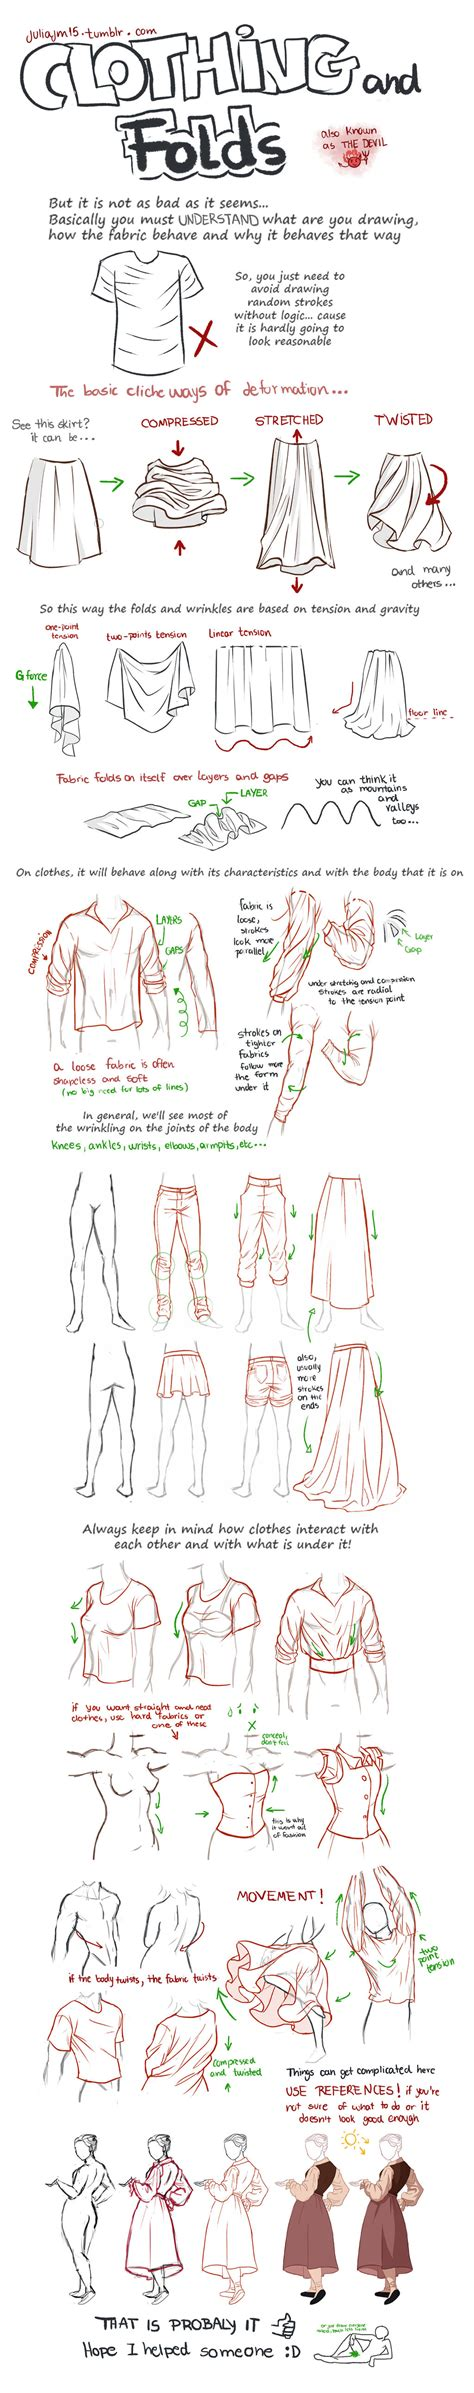 design clothes tutorial clothing and folds tutorial by juliajm15 on deviantart